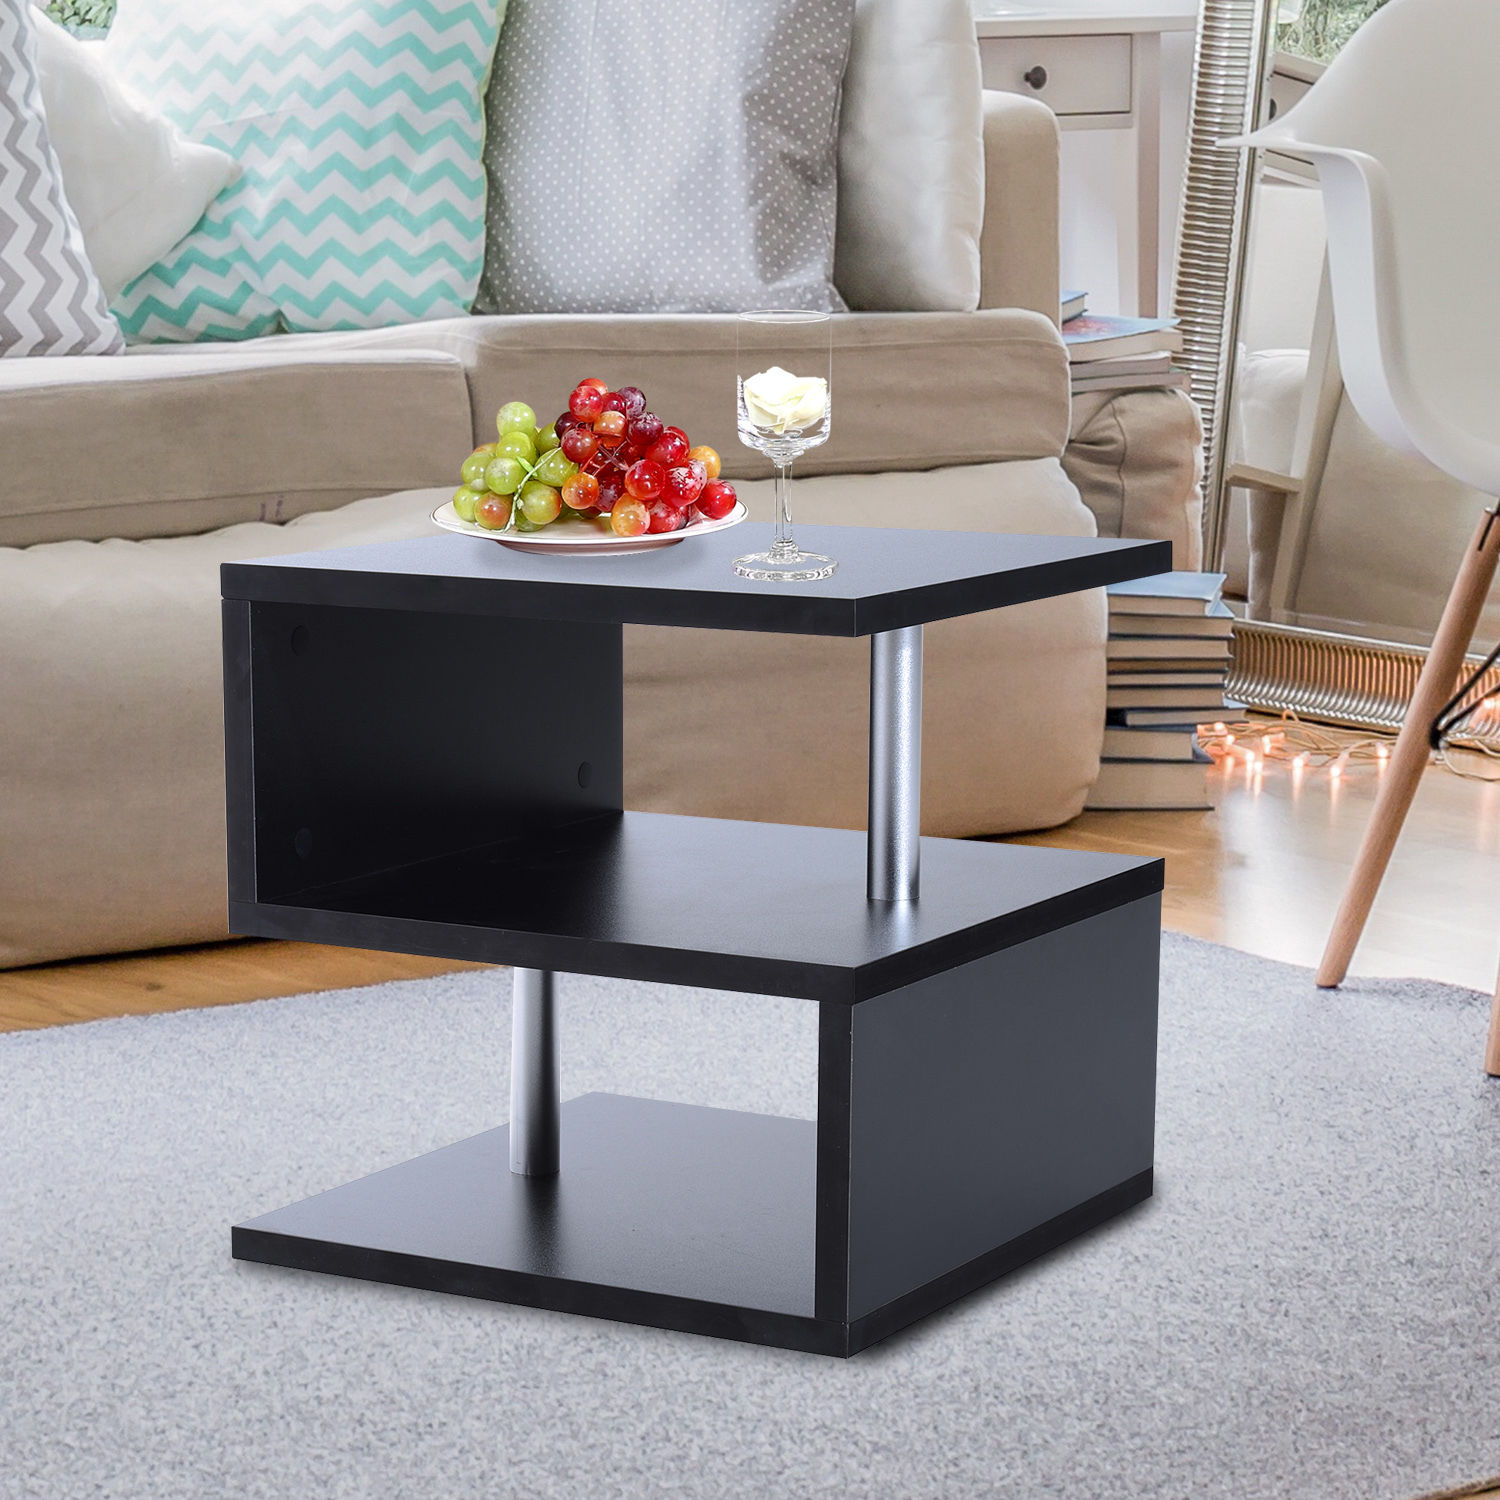 Living Room Sofa With Storage: 2 Tier Side End Coffee Table Storage Shelves Sofa Couch